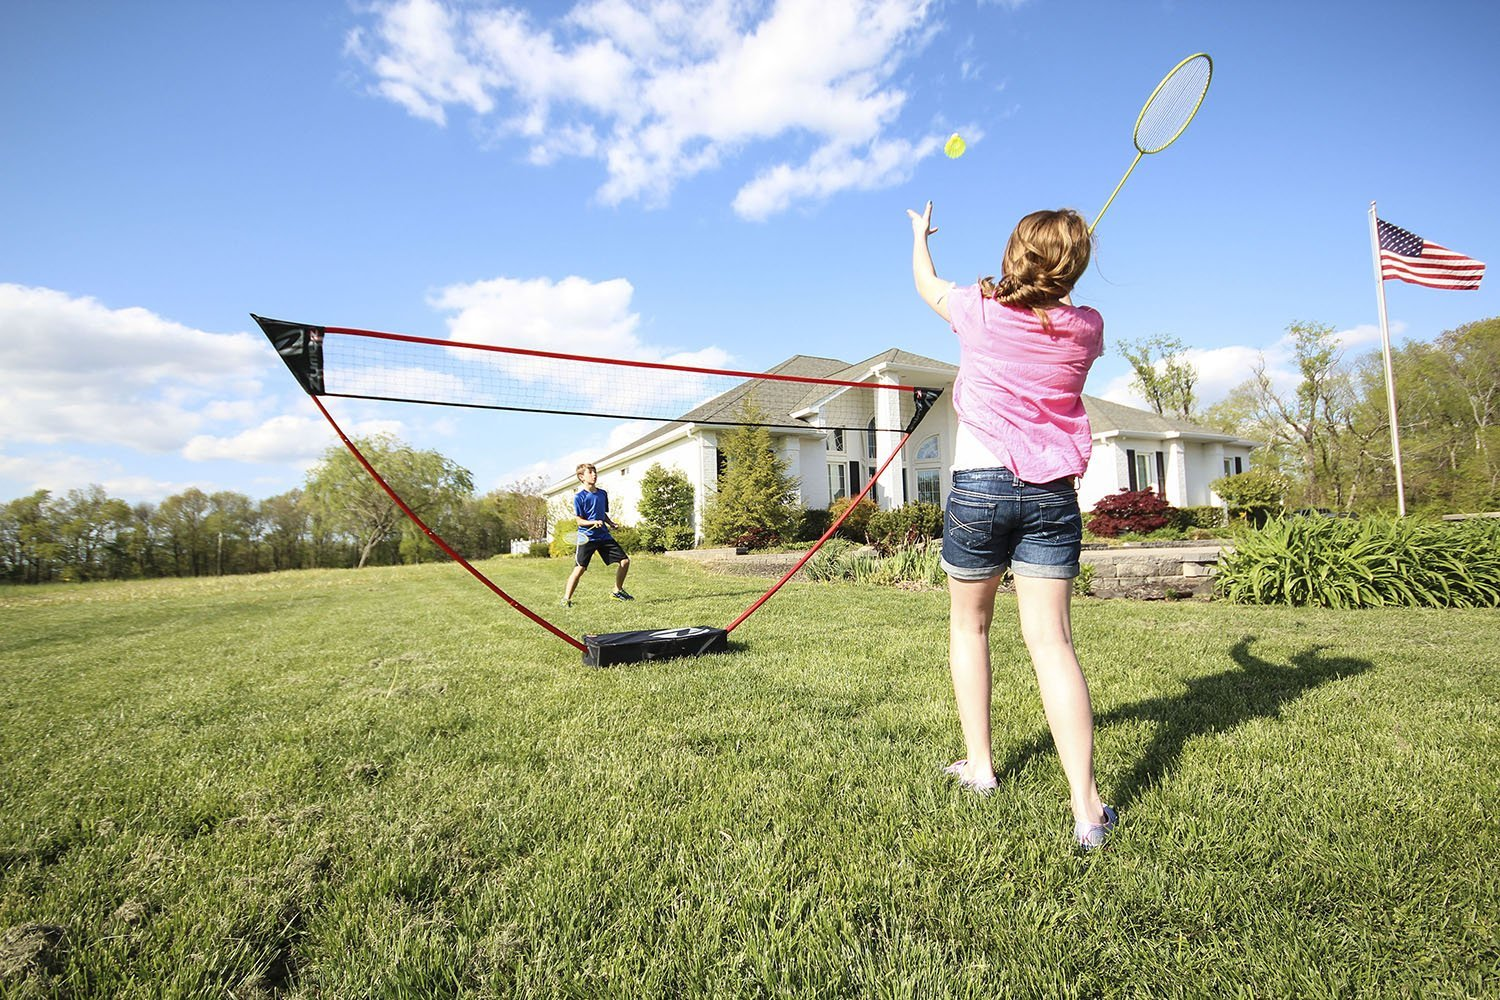 Zume Games Portable Badminton Set with Freestanding Base - Sets Up on Any Surface in Seconds - No Tools or Stakes Required (Renewed) by Zume (Image #8)